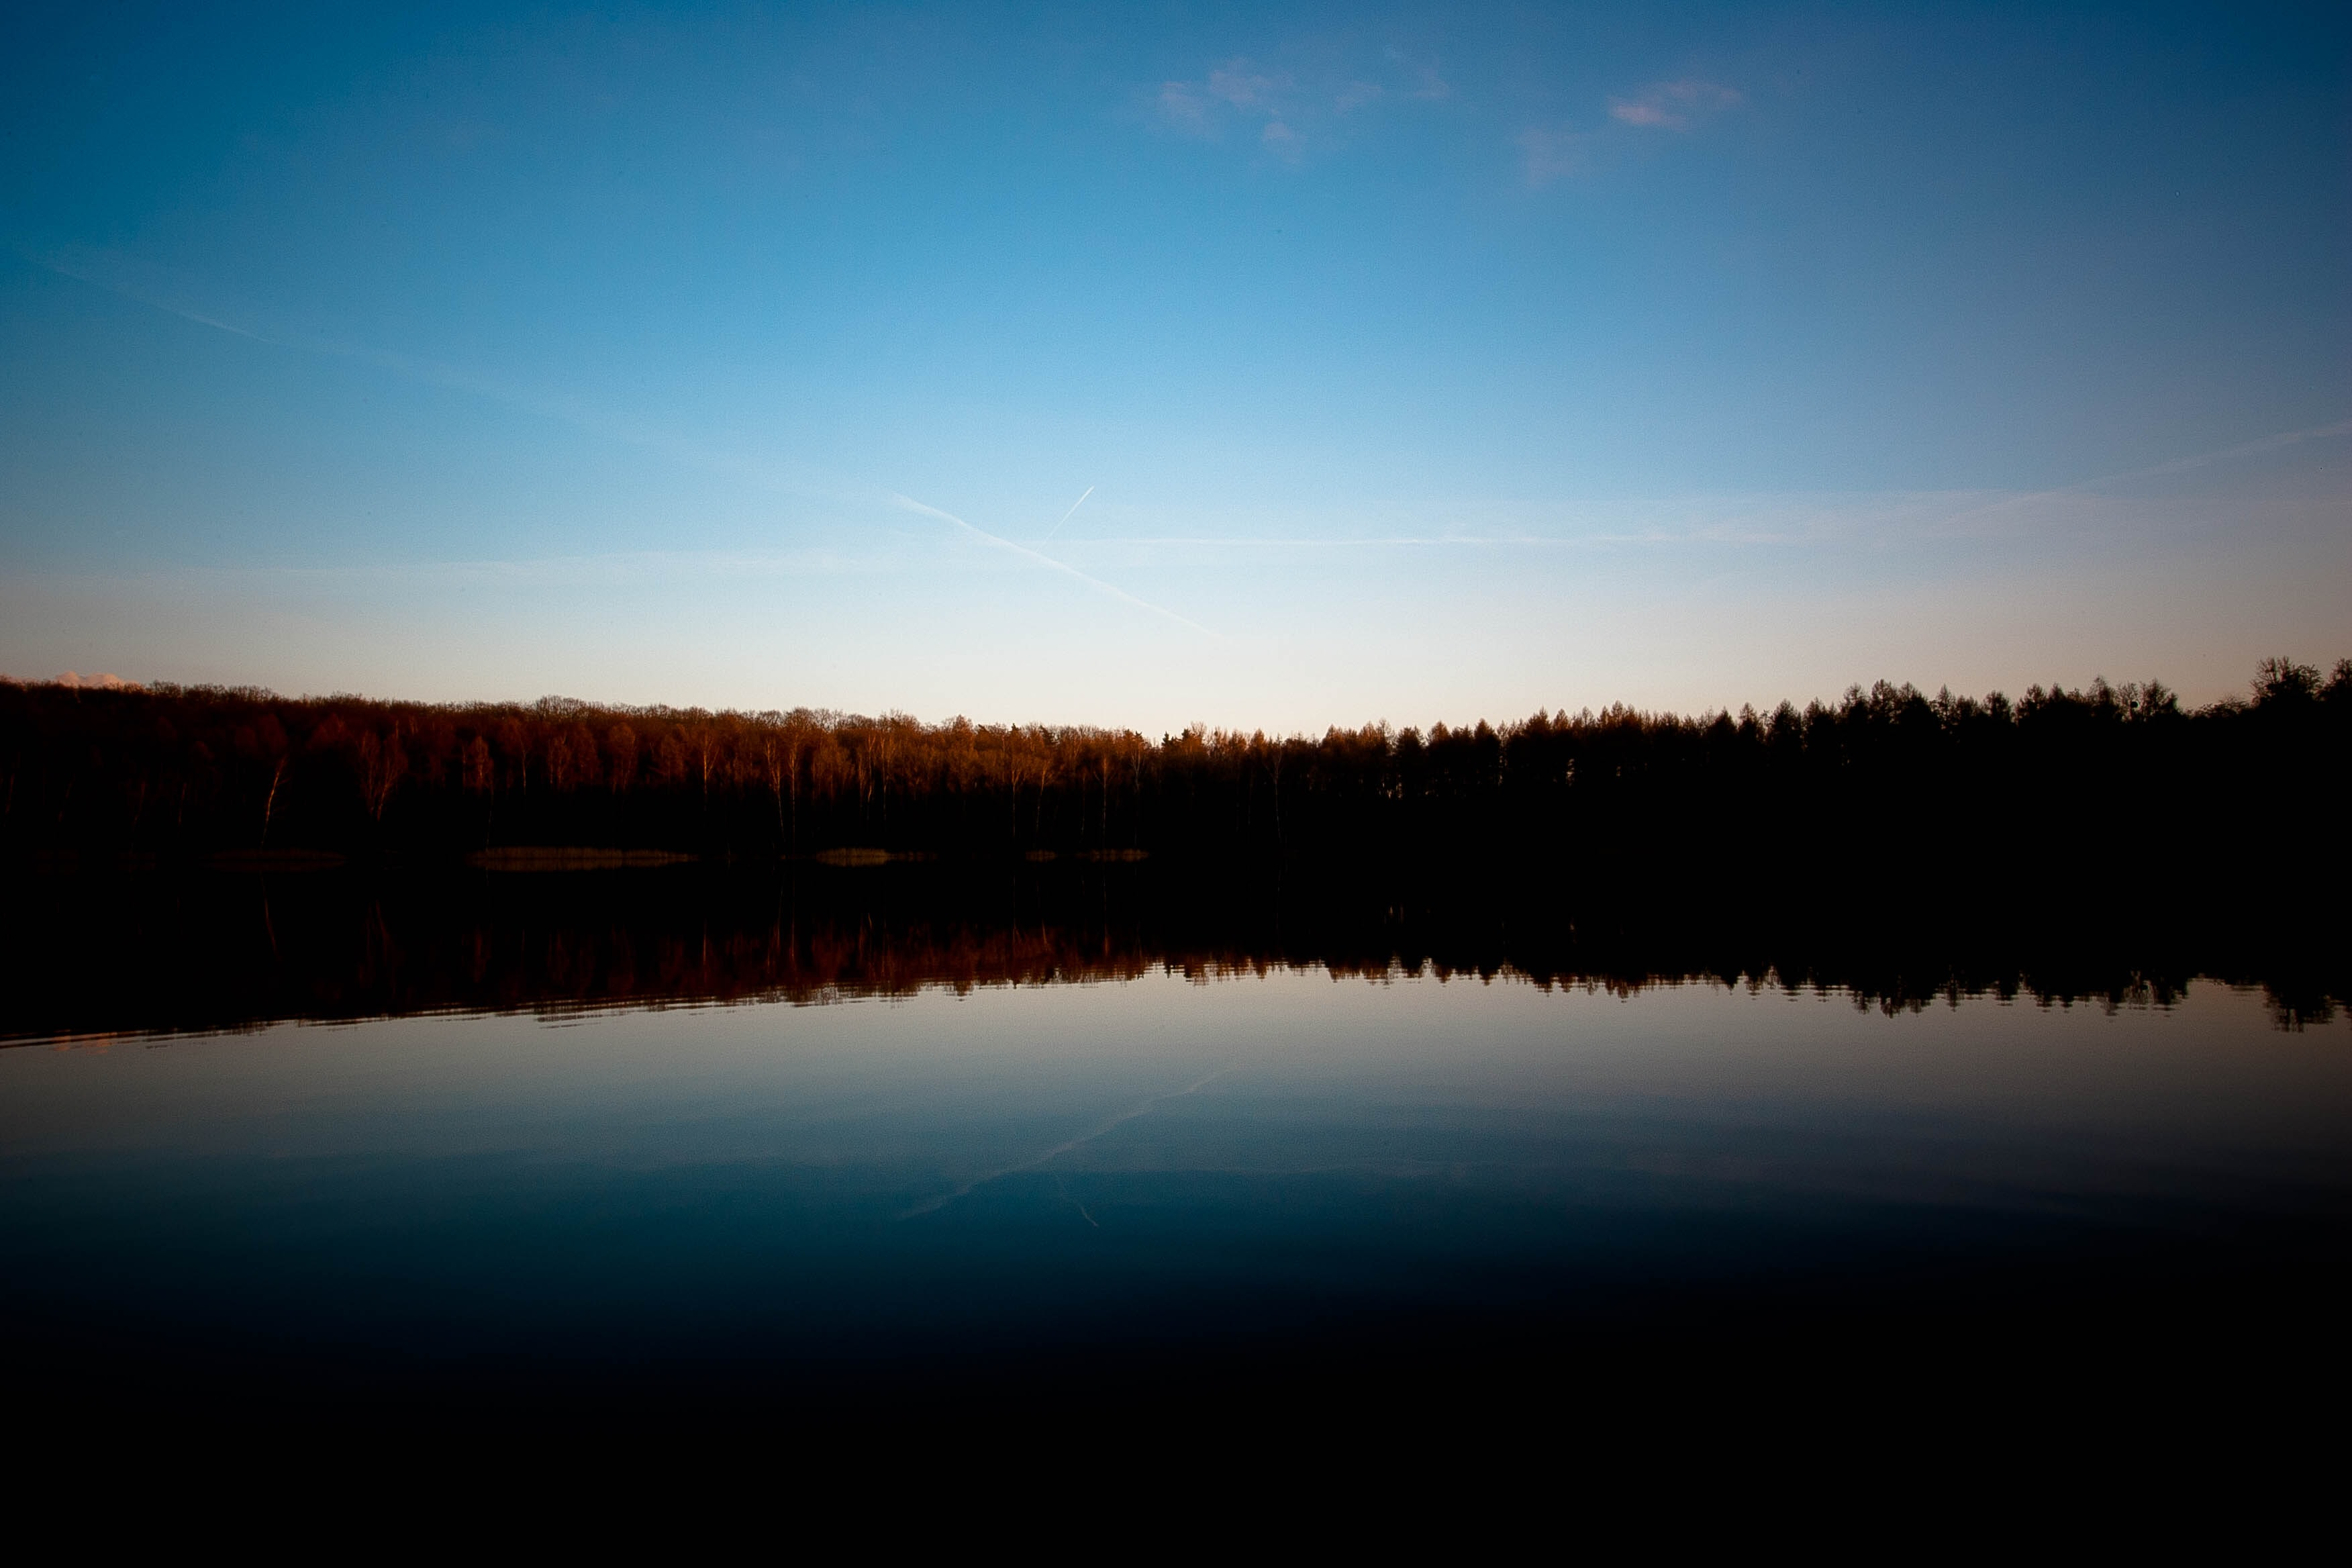 Silhouettes of trees reflected in a still lake in the evening